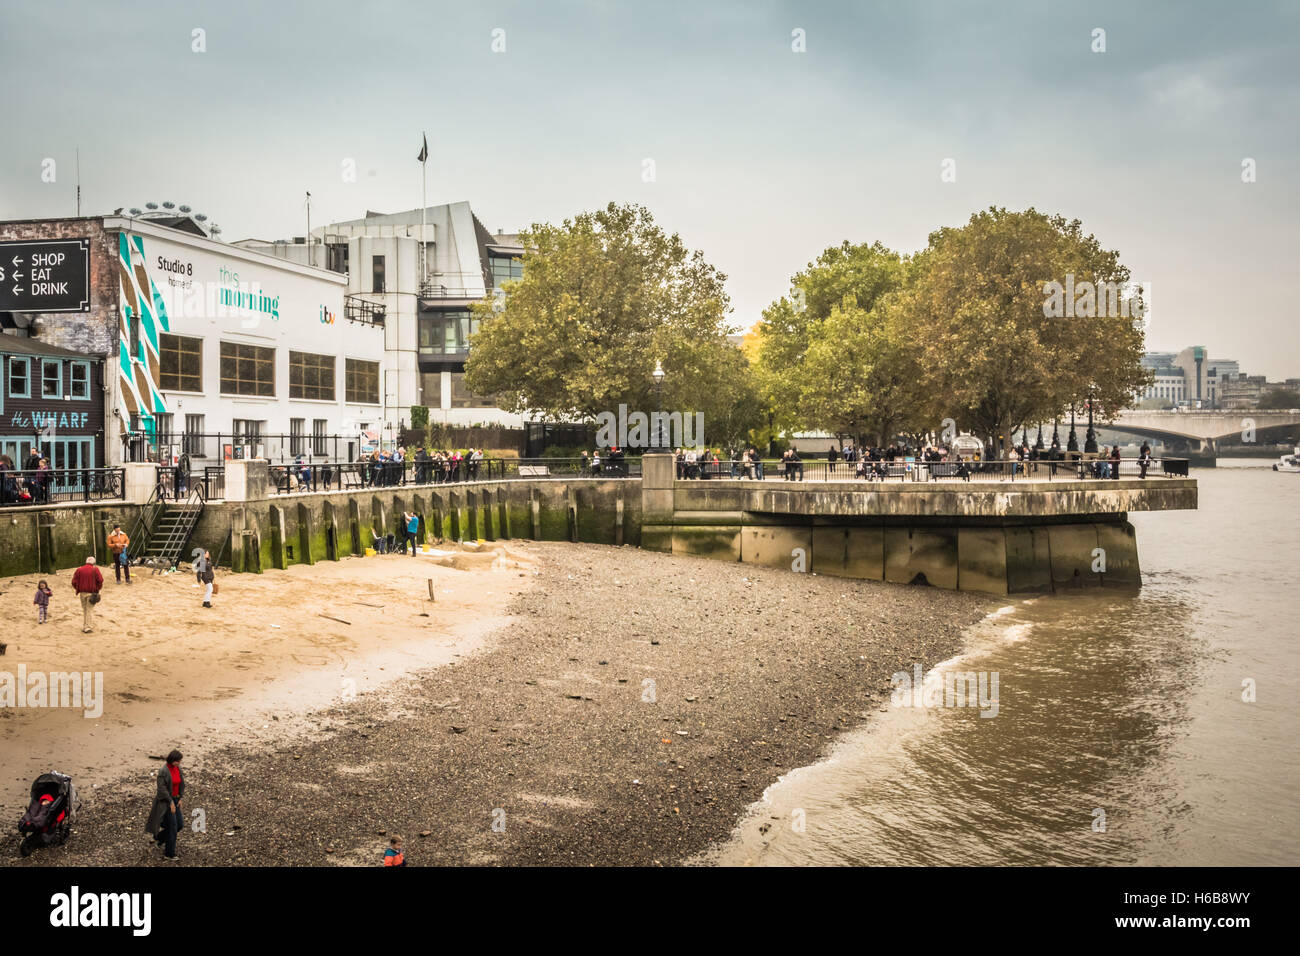 Proposed site of the controversial Garden Bridge on London's South Bank, Waterloo, Lambeth, UK - Stock Image